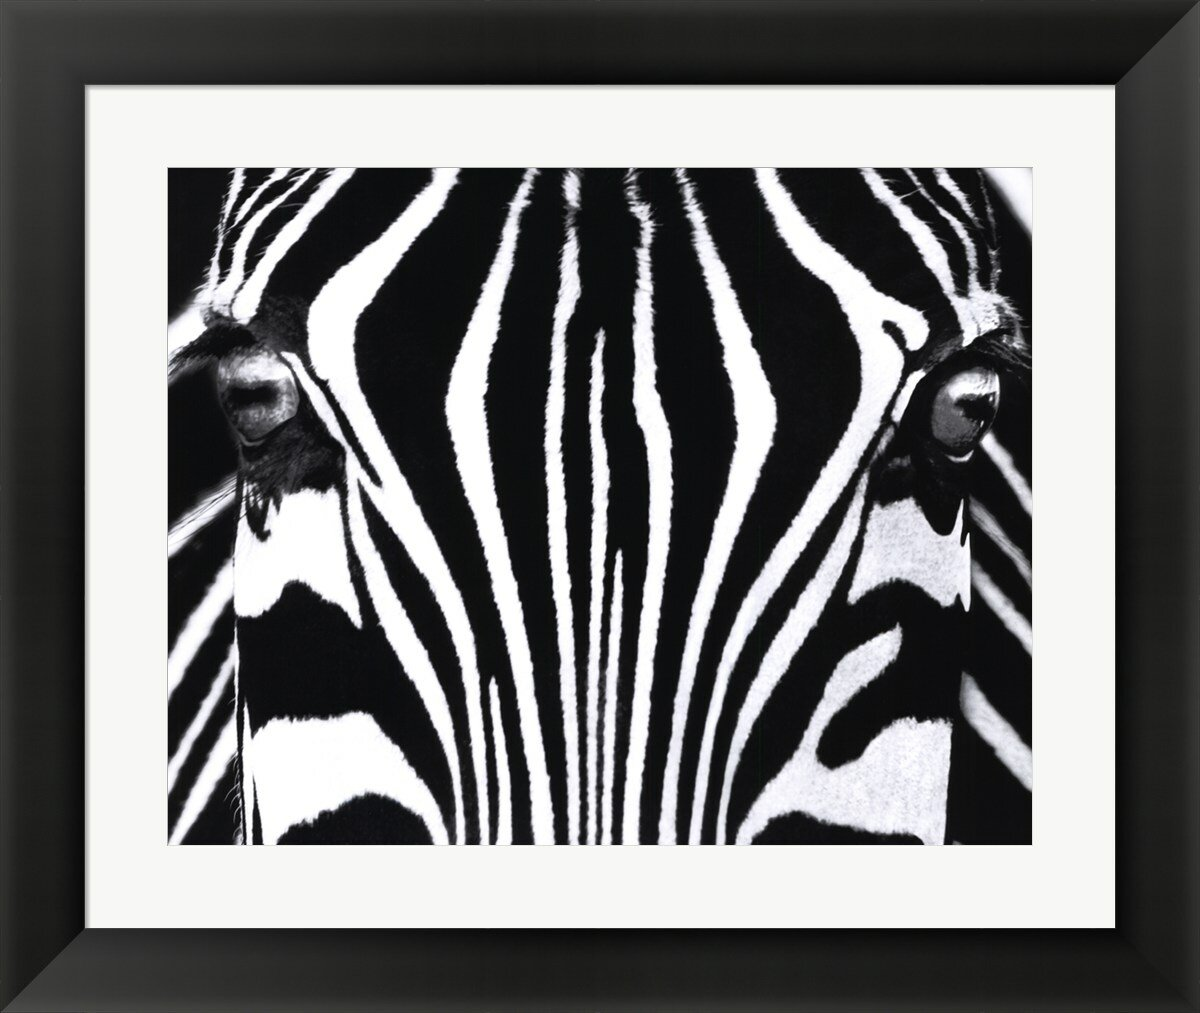 Evive Designs Black And White I By Rocco Sette Framed Photographic Print Wayfair